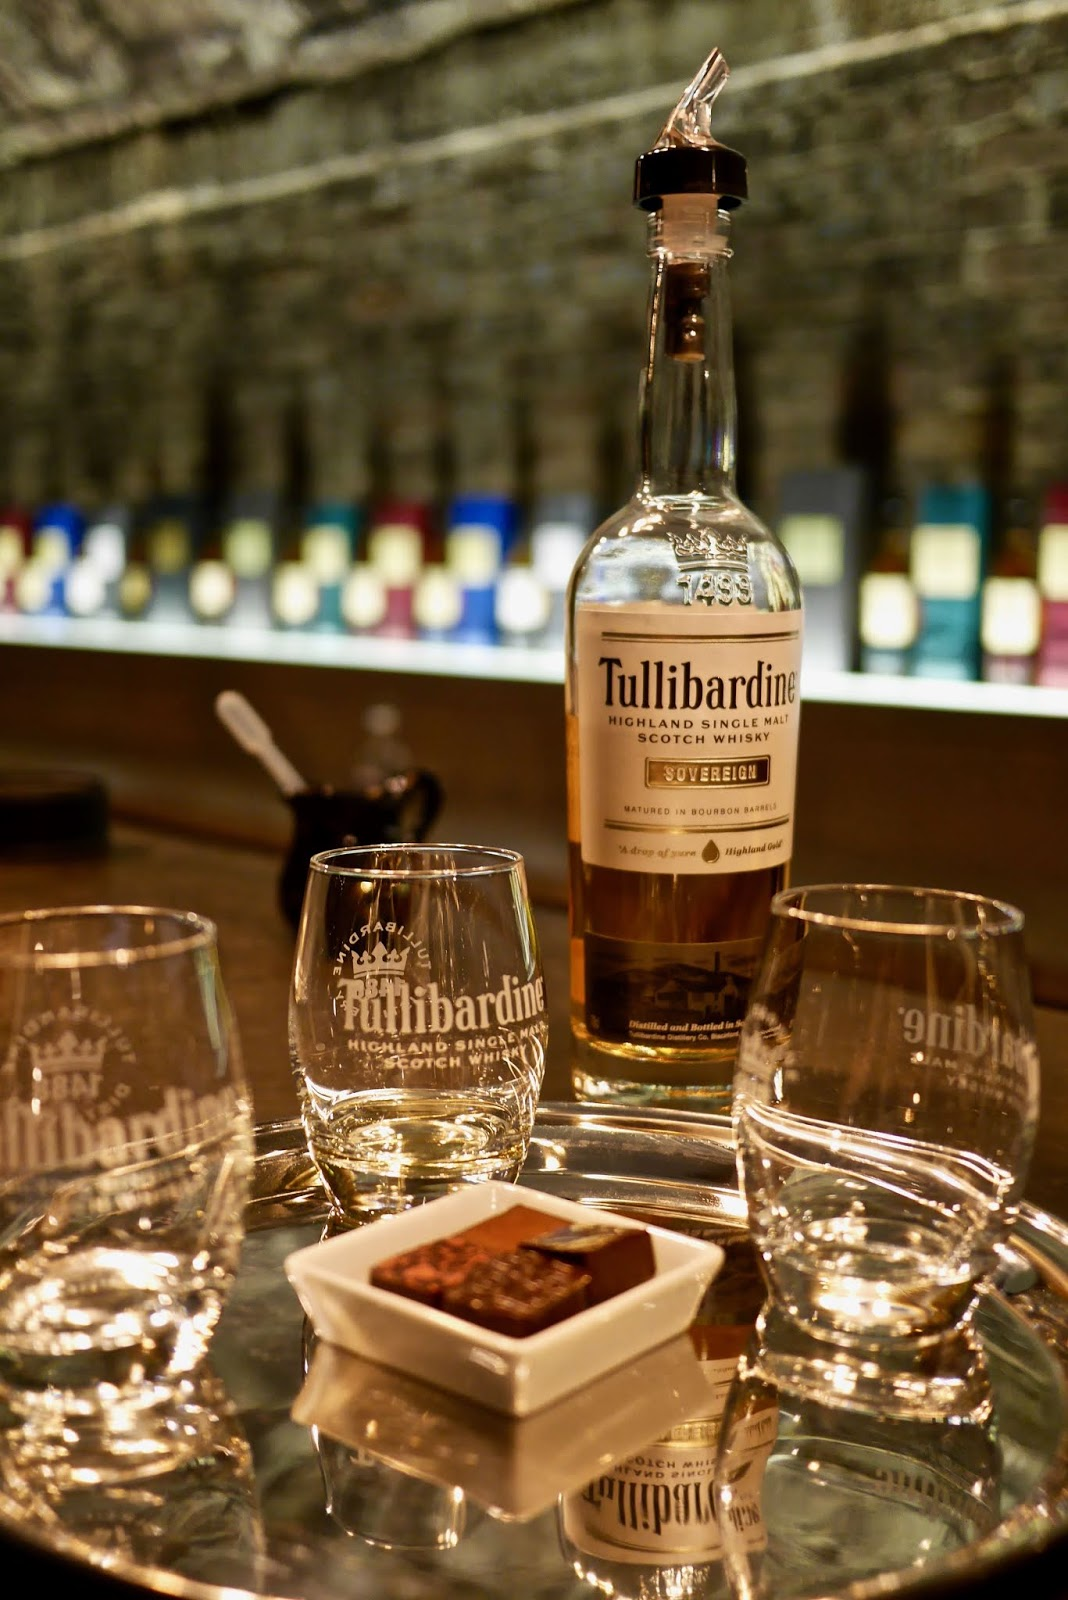 Tullibardine whisky distillery new tasting room